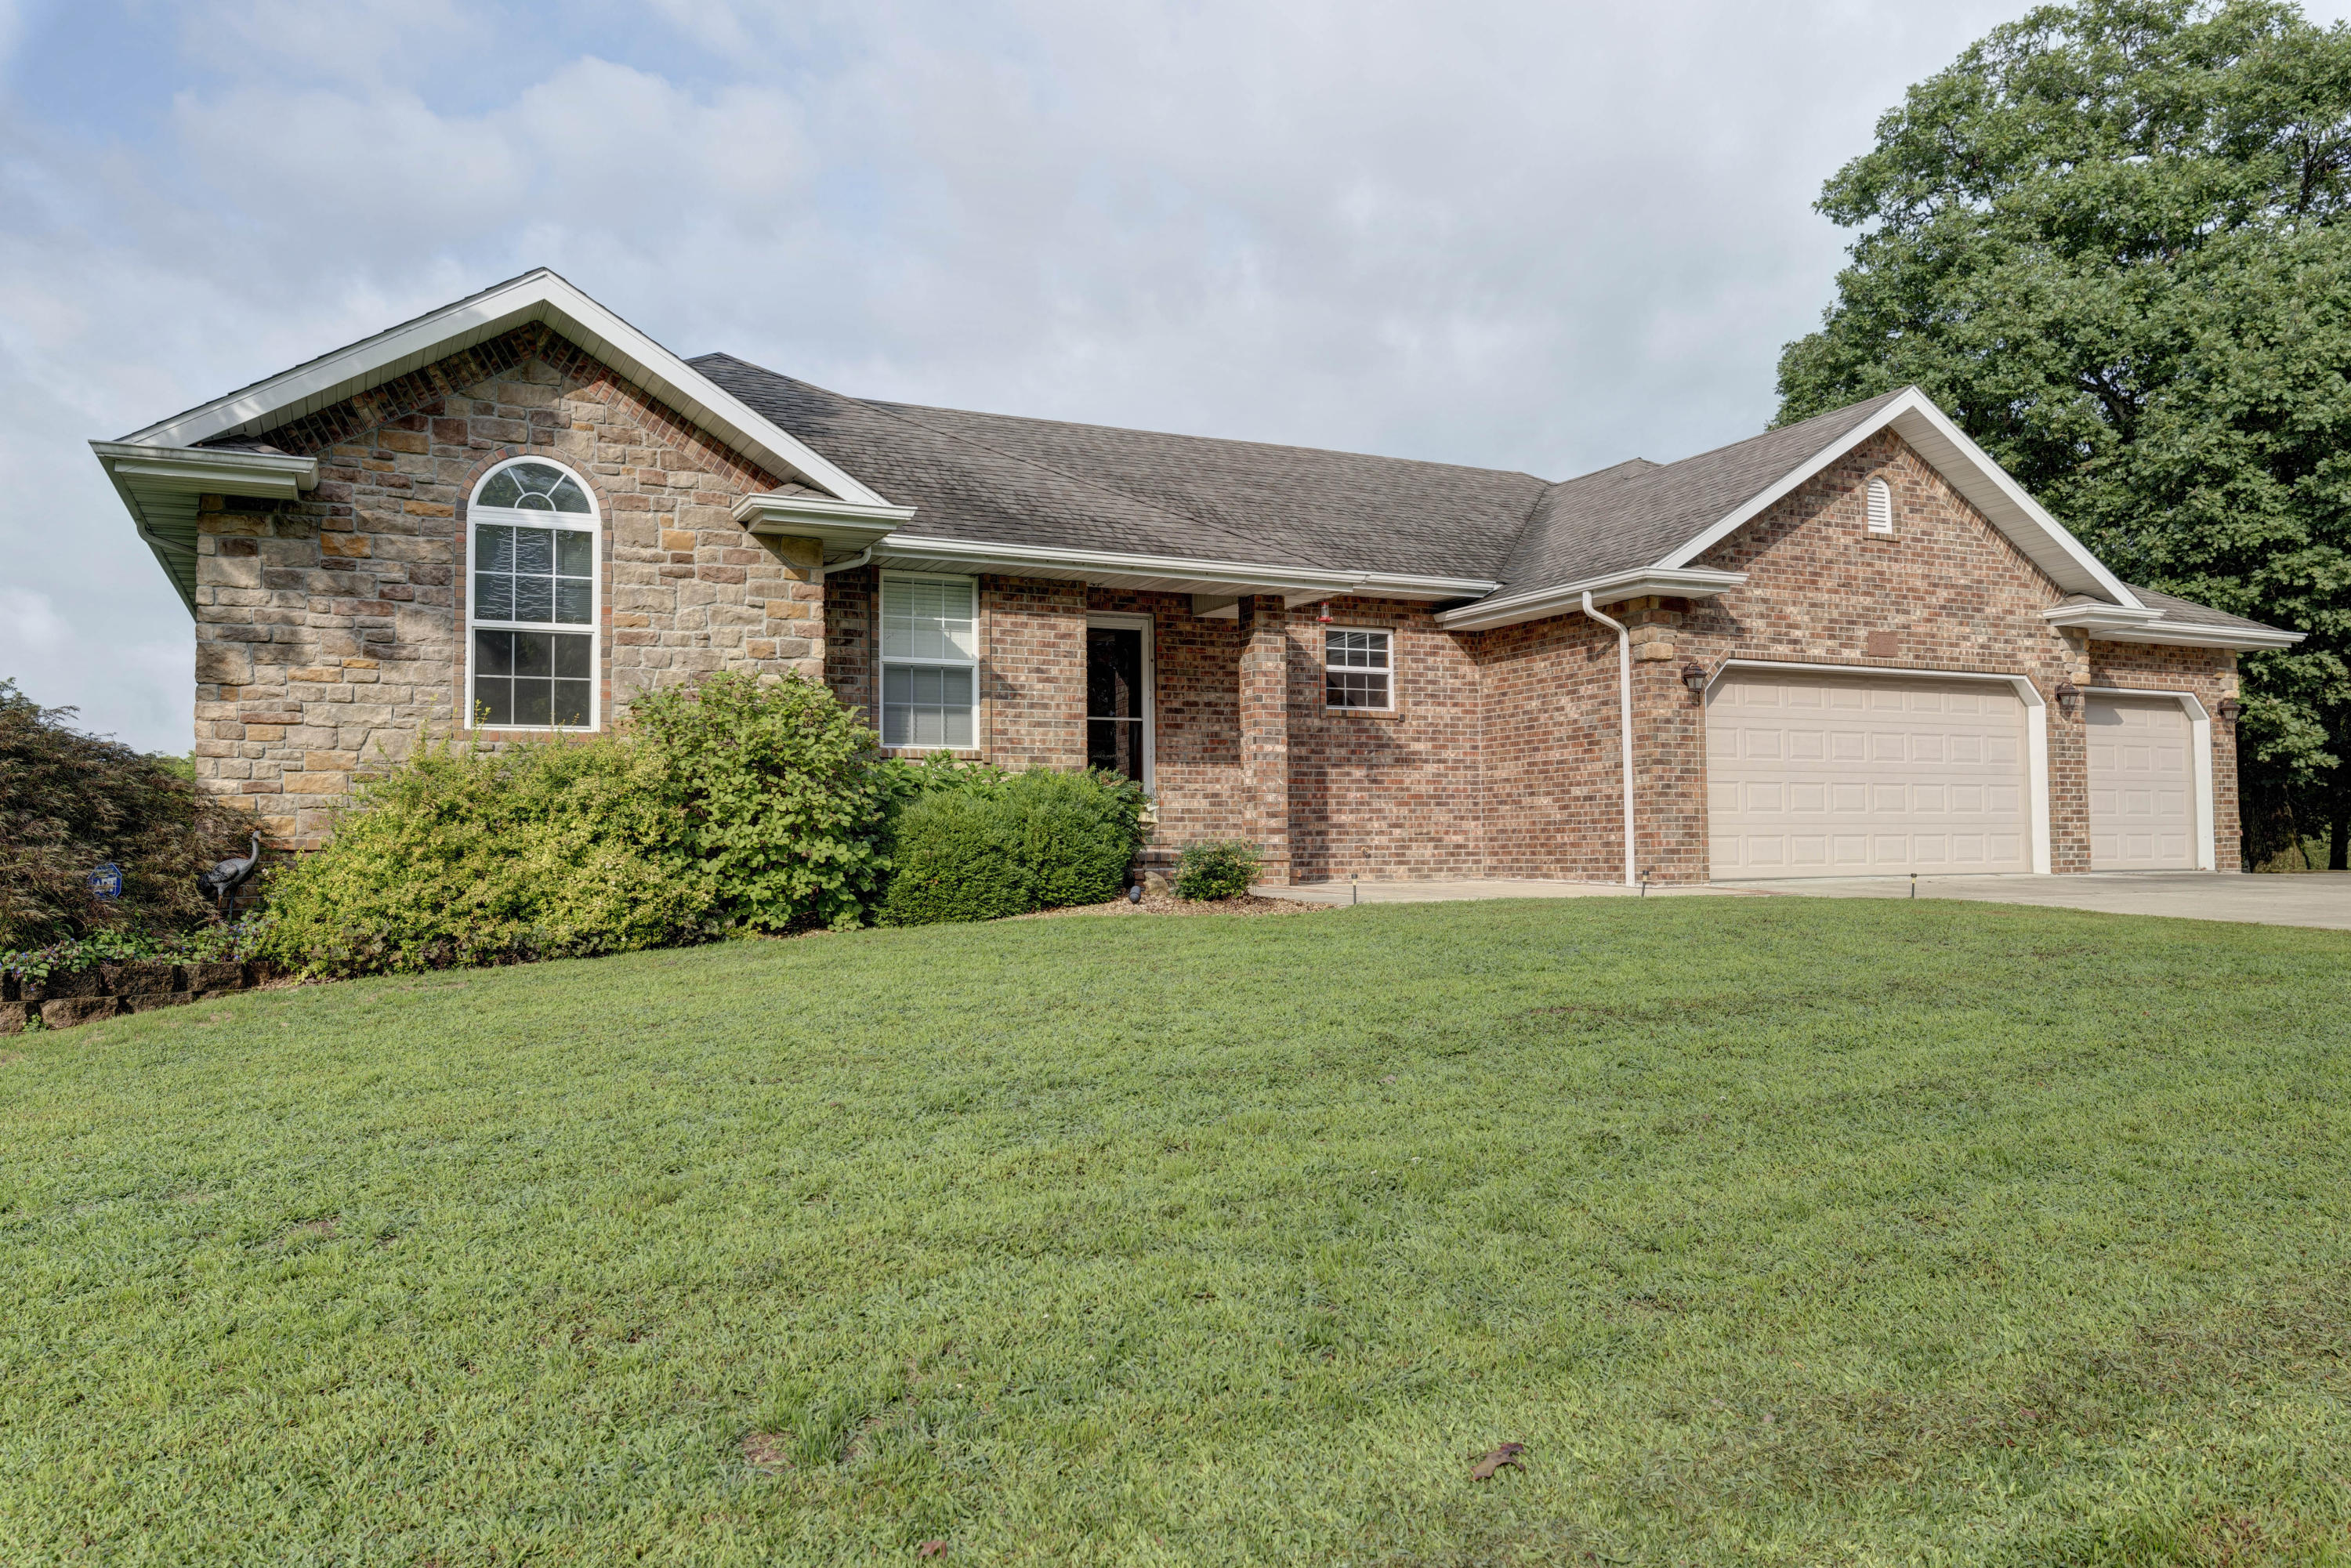 2366 South Alcey Way Nixa, MO 65714